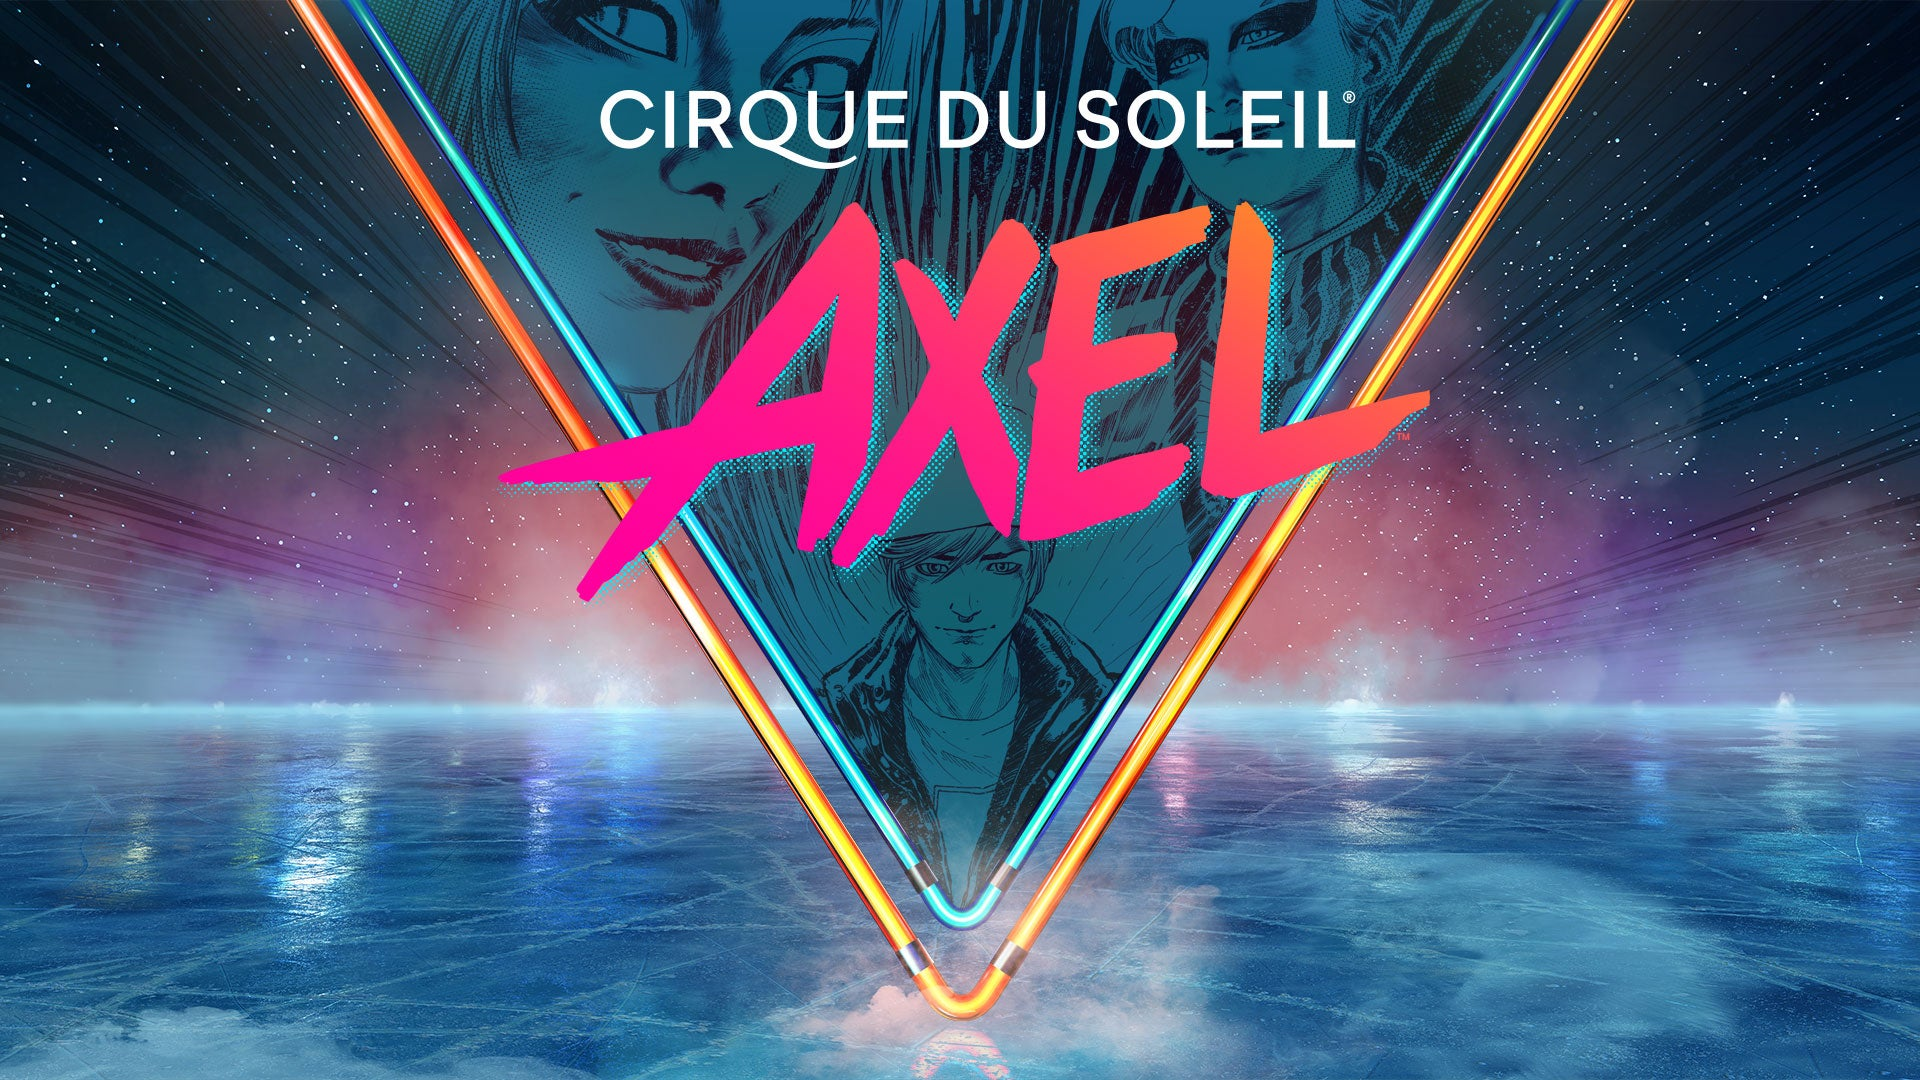 More Info for Cirque du Soleil: AXEL